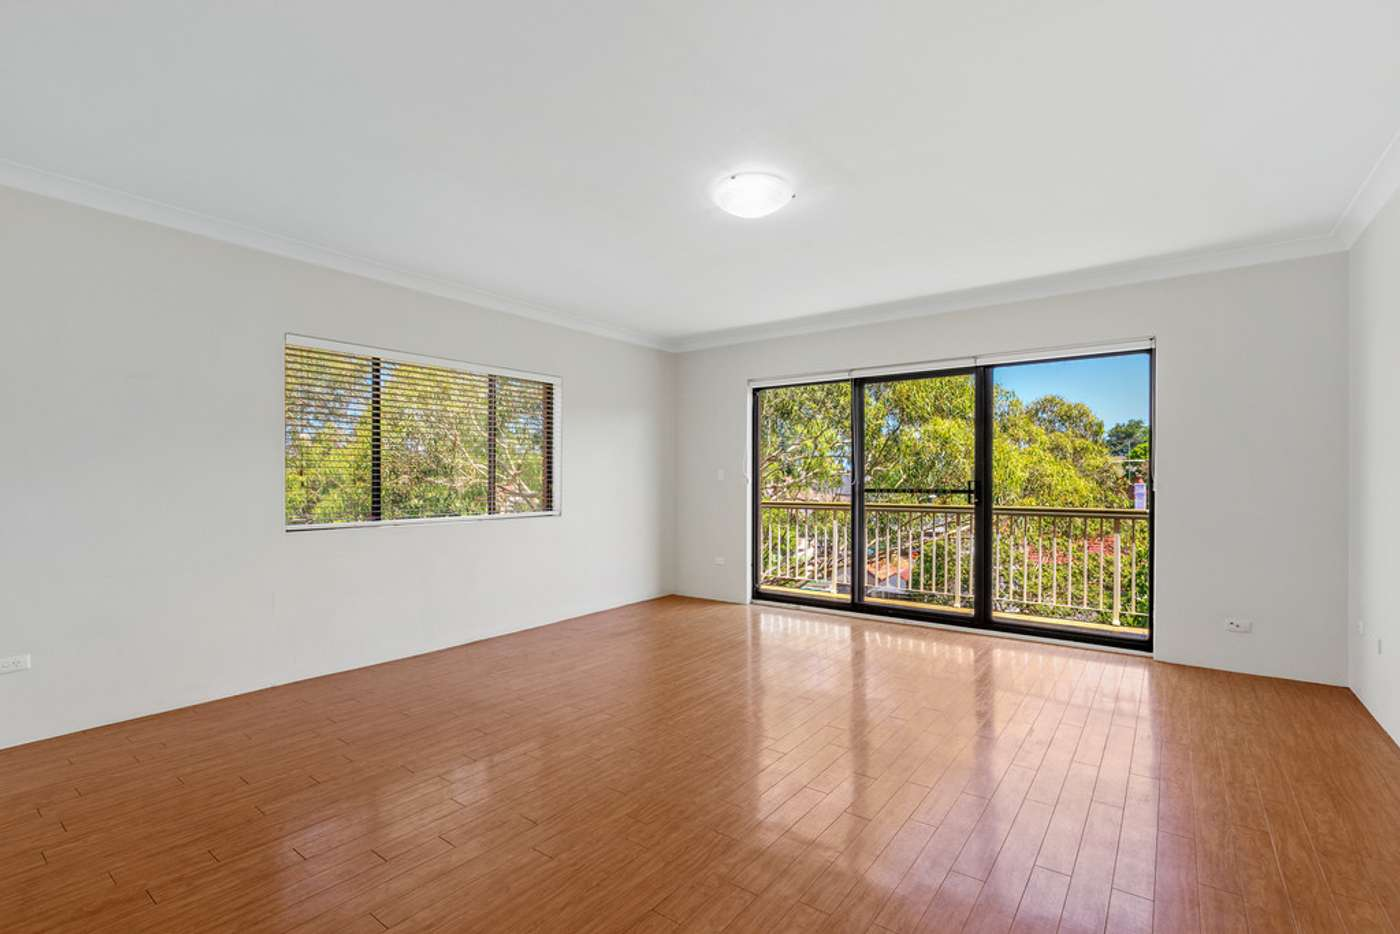 Main view of Homely apartment listing, 7/24-26 Grosvenor, Kensington NSW 2033